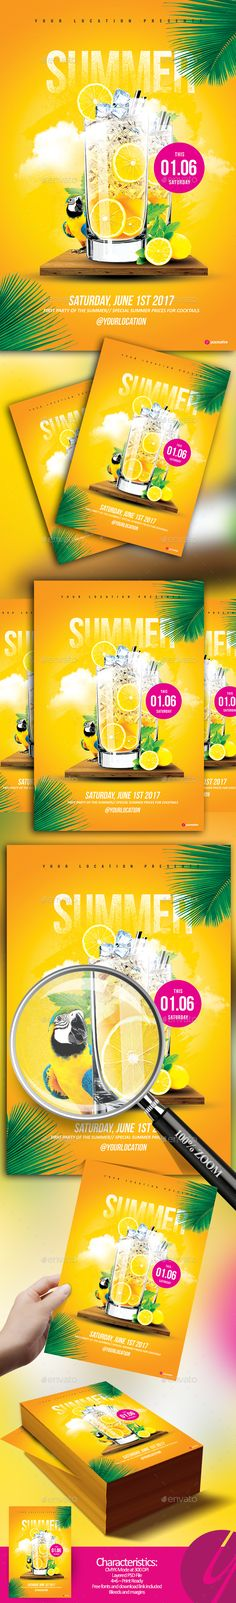 #Summer Drinks #Flyer - Clubs & Parties Events Download here: https://graphicriver.net/item/summer-drinks-flyer/19751066?ref=alena994